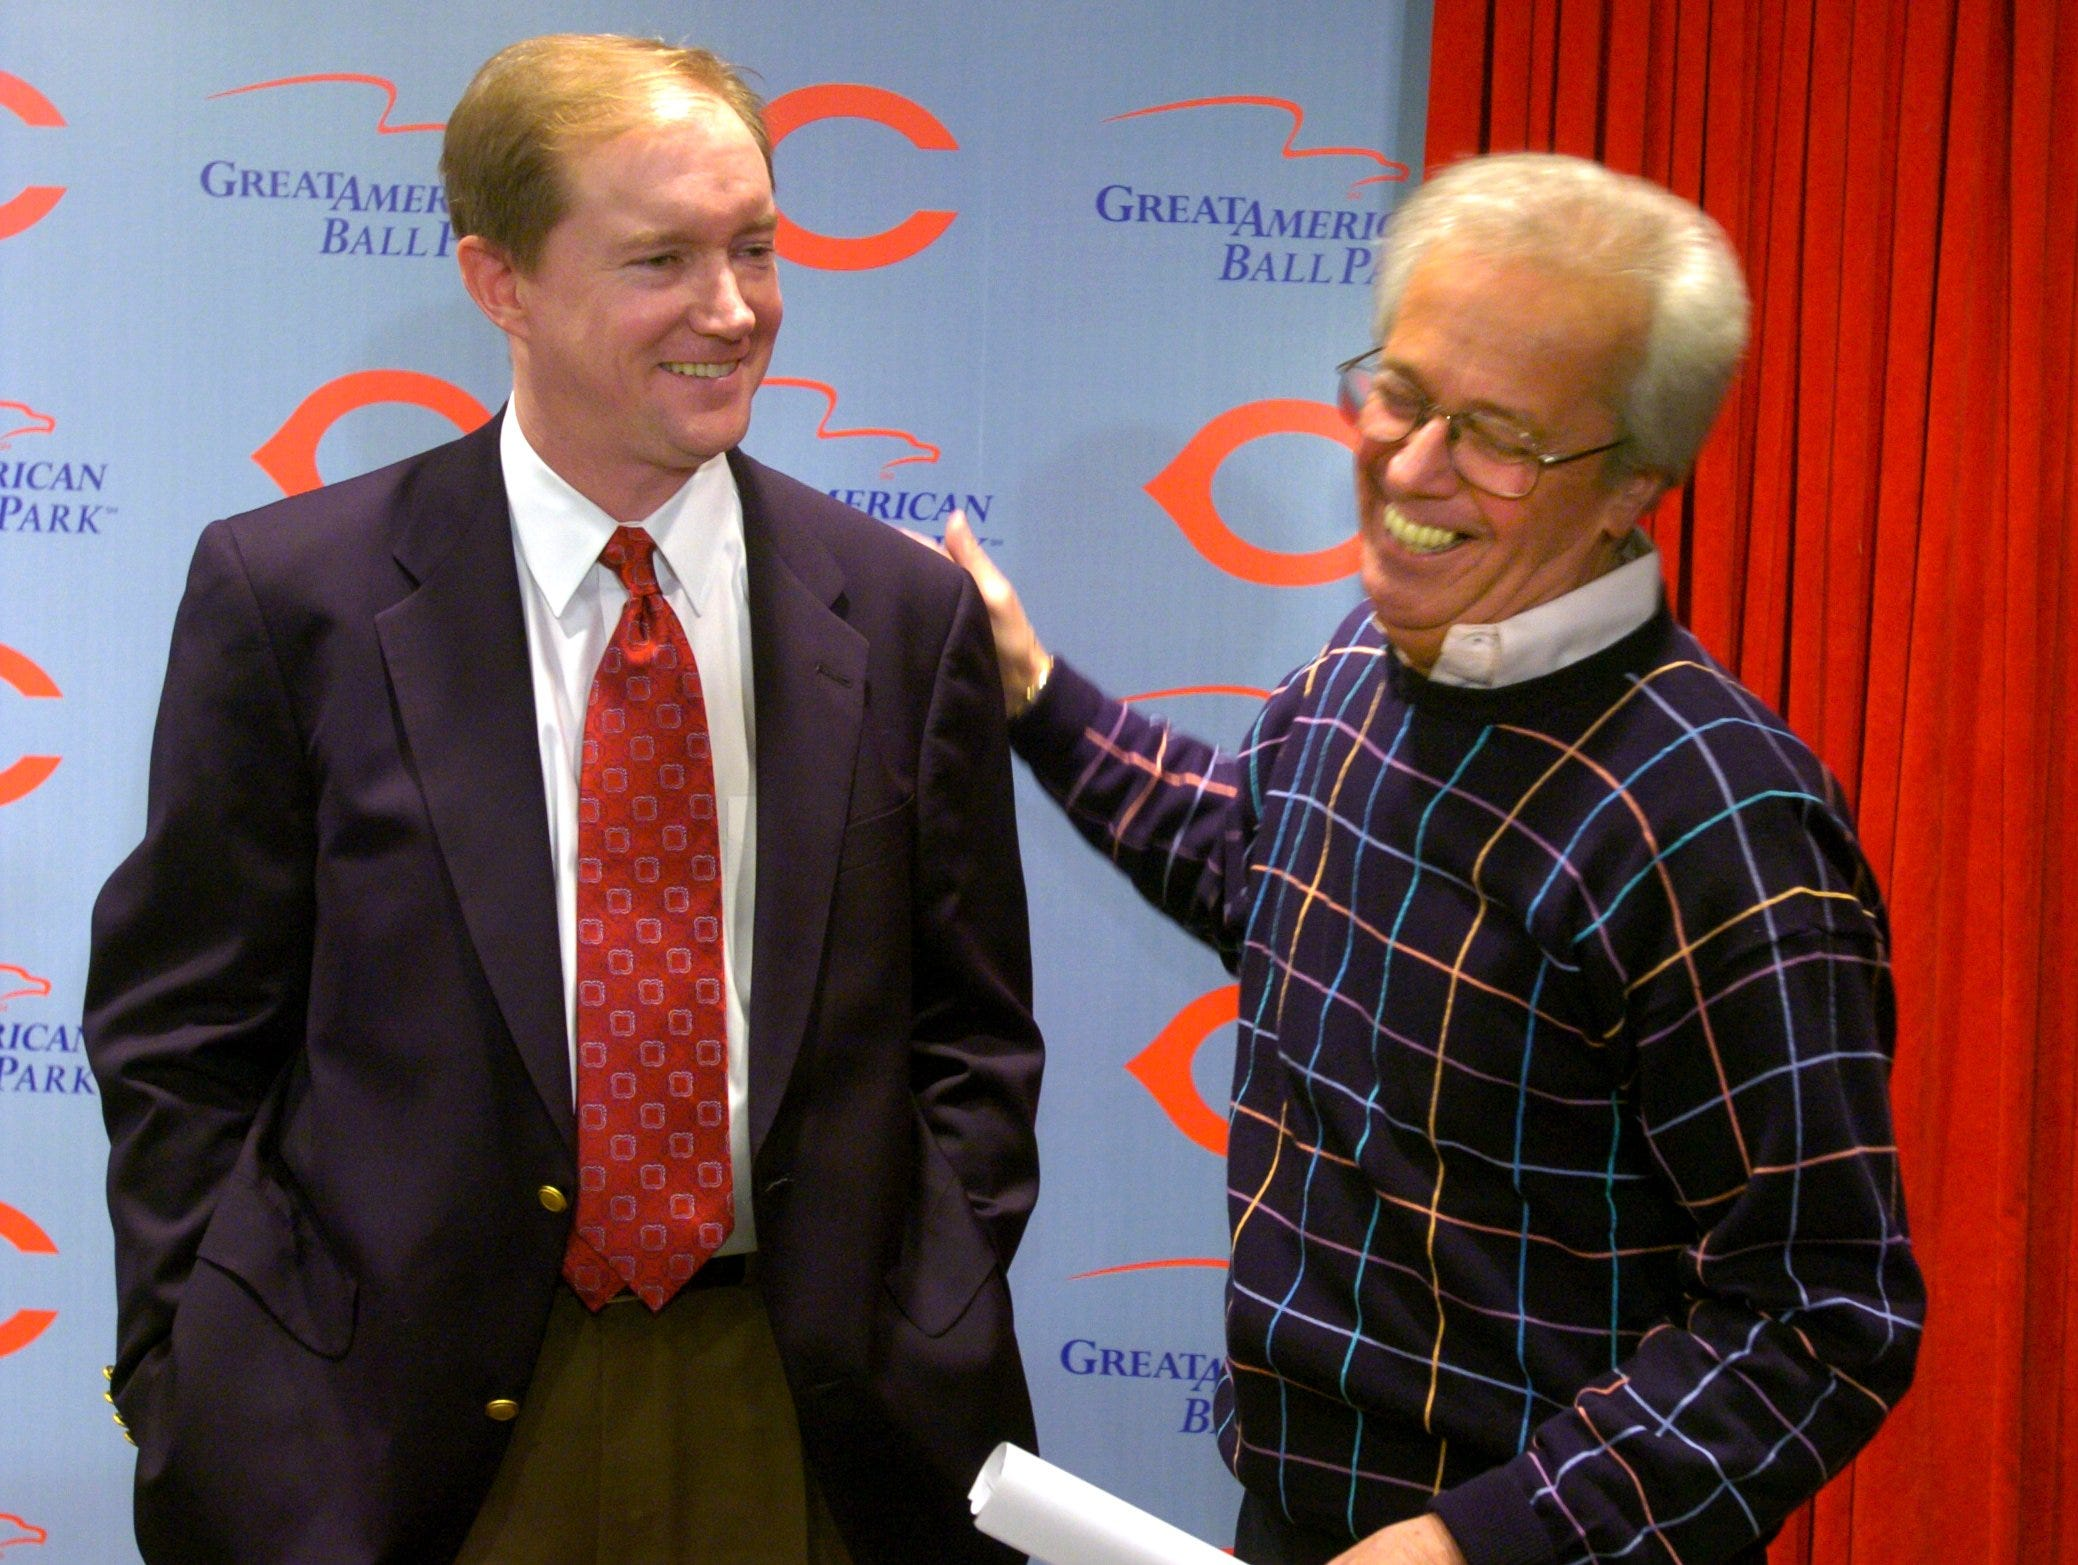 Steve Stewart, left, gets a congratulatory pat from Marty Brennaman during a press conference Wednesday afternoon February 11, 2004 at Great American Ball Park where in was announced that he will succeed Joe Nuxhall in the Cincinnati Reds radio broadcast booth. Cincinnati Enquirer photo by Gary Landers